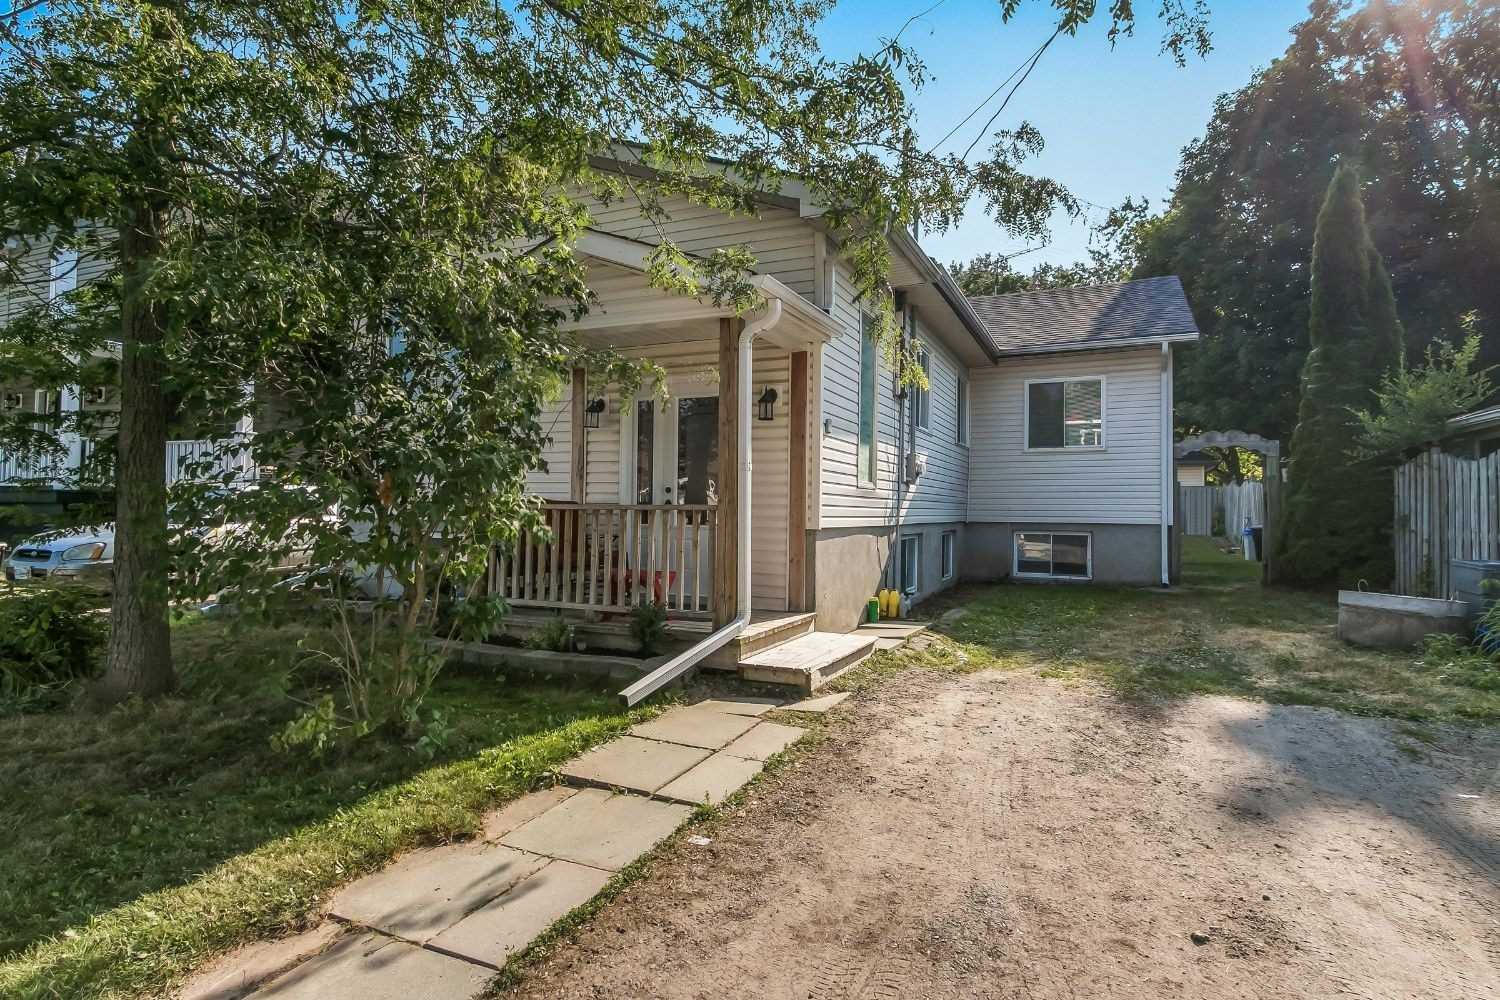 pictures of house for sale MLS: E4735276 located at 10 Marina Dr, Scugog L0B1E0